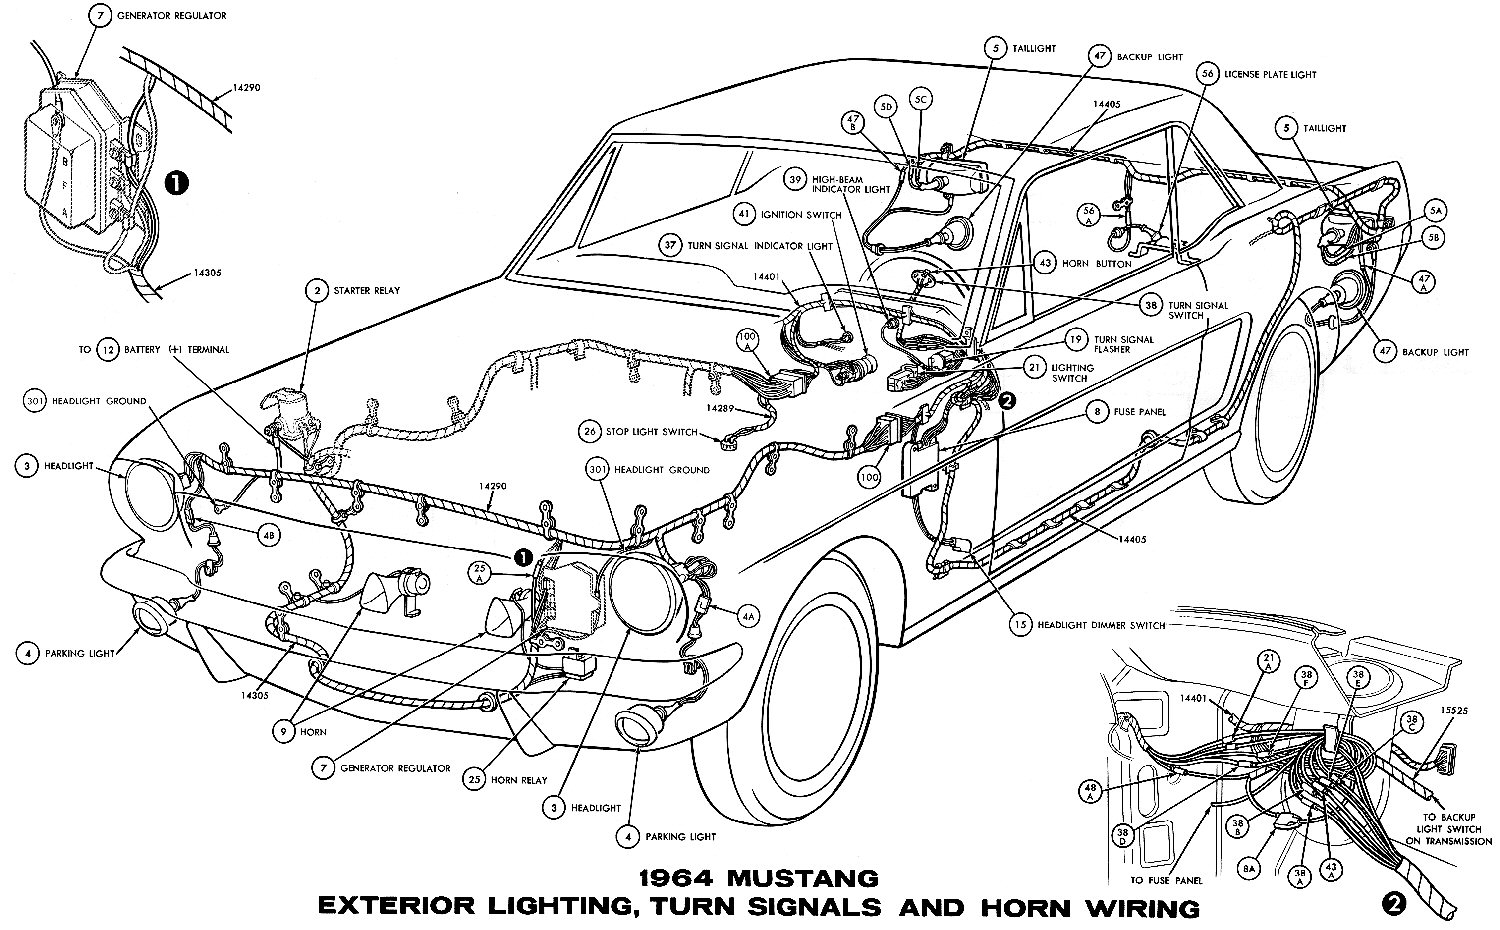 hight resolution of 64 mustang turn signal wiring diagram simple wiring diagrams 1966 mustang turn signal diagram 1968 mustang turn signal switch diagram wiring schematic